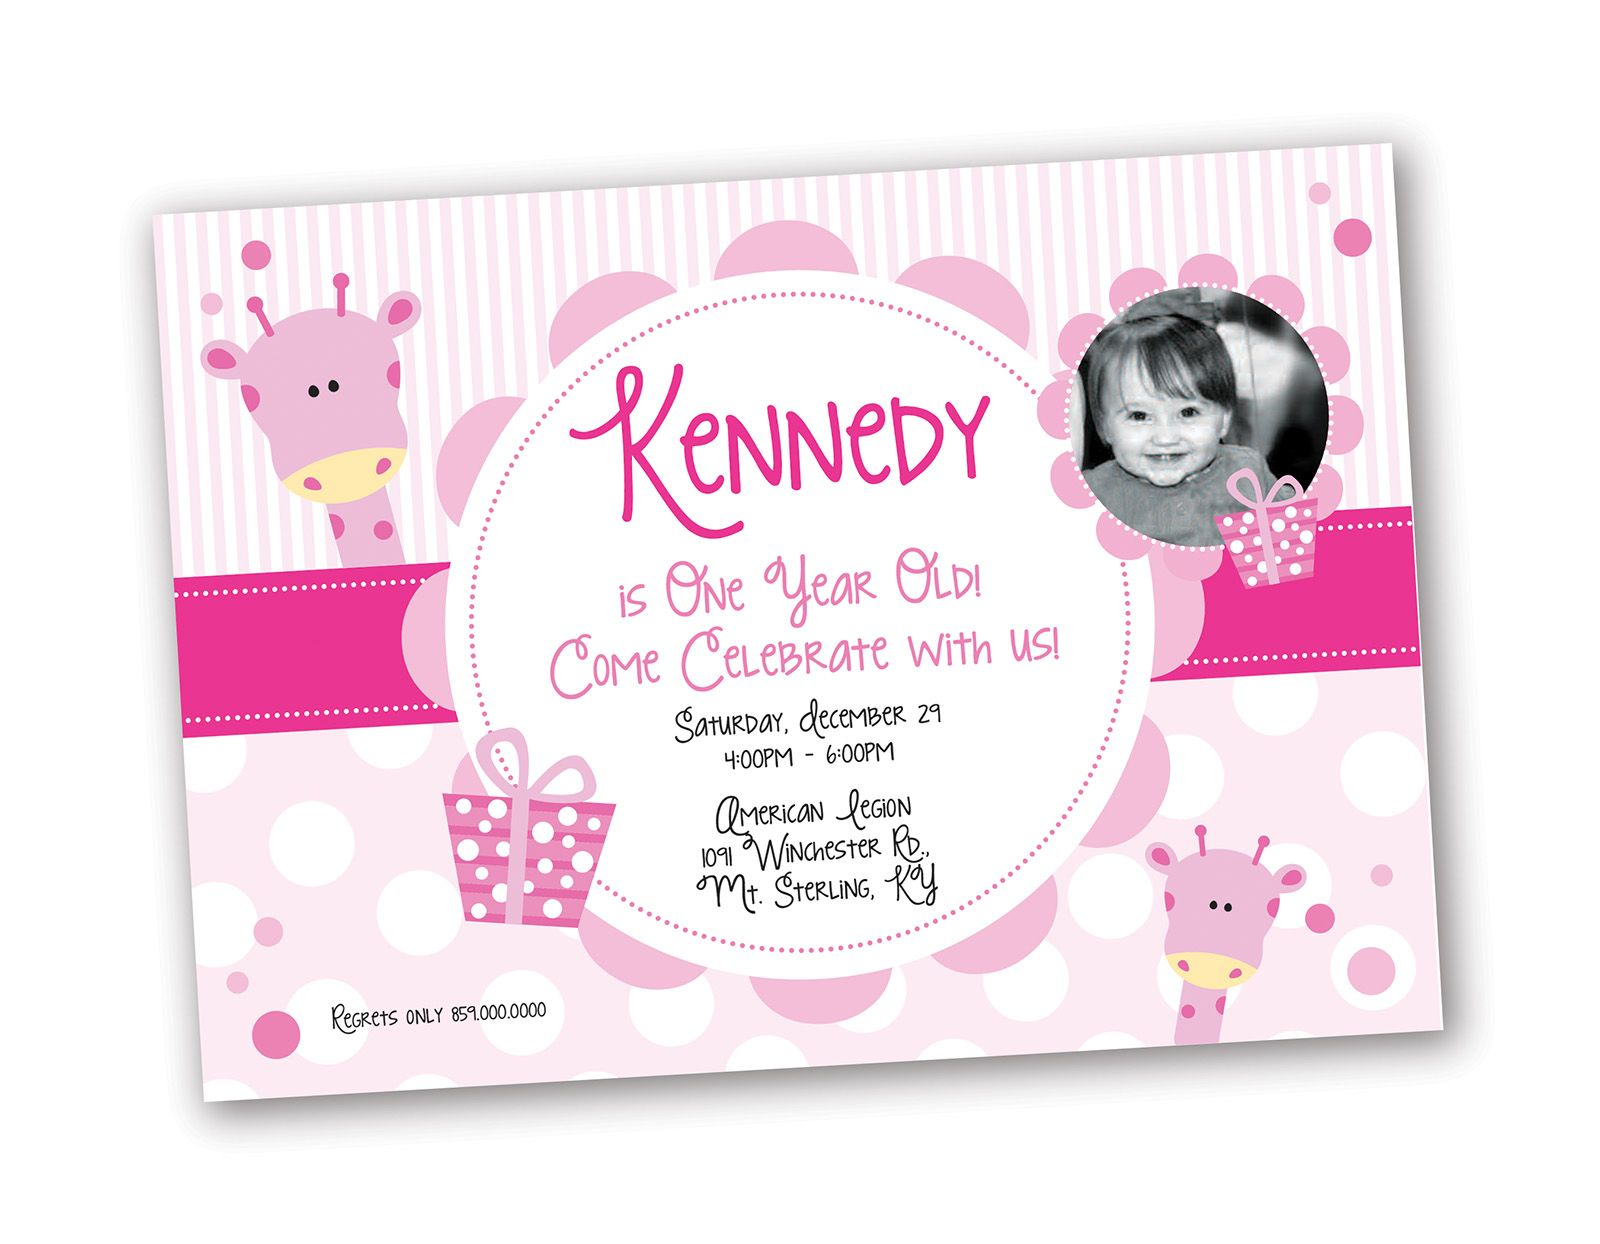 1 year old girl birthday invitation giraffe theme design designs